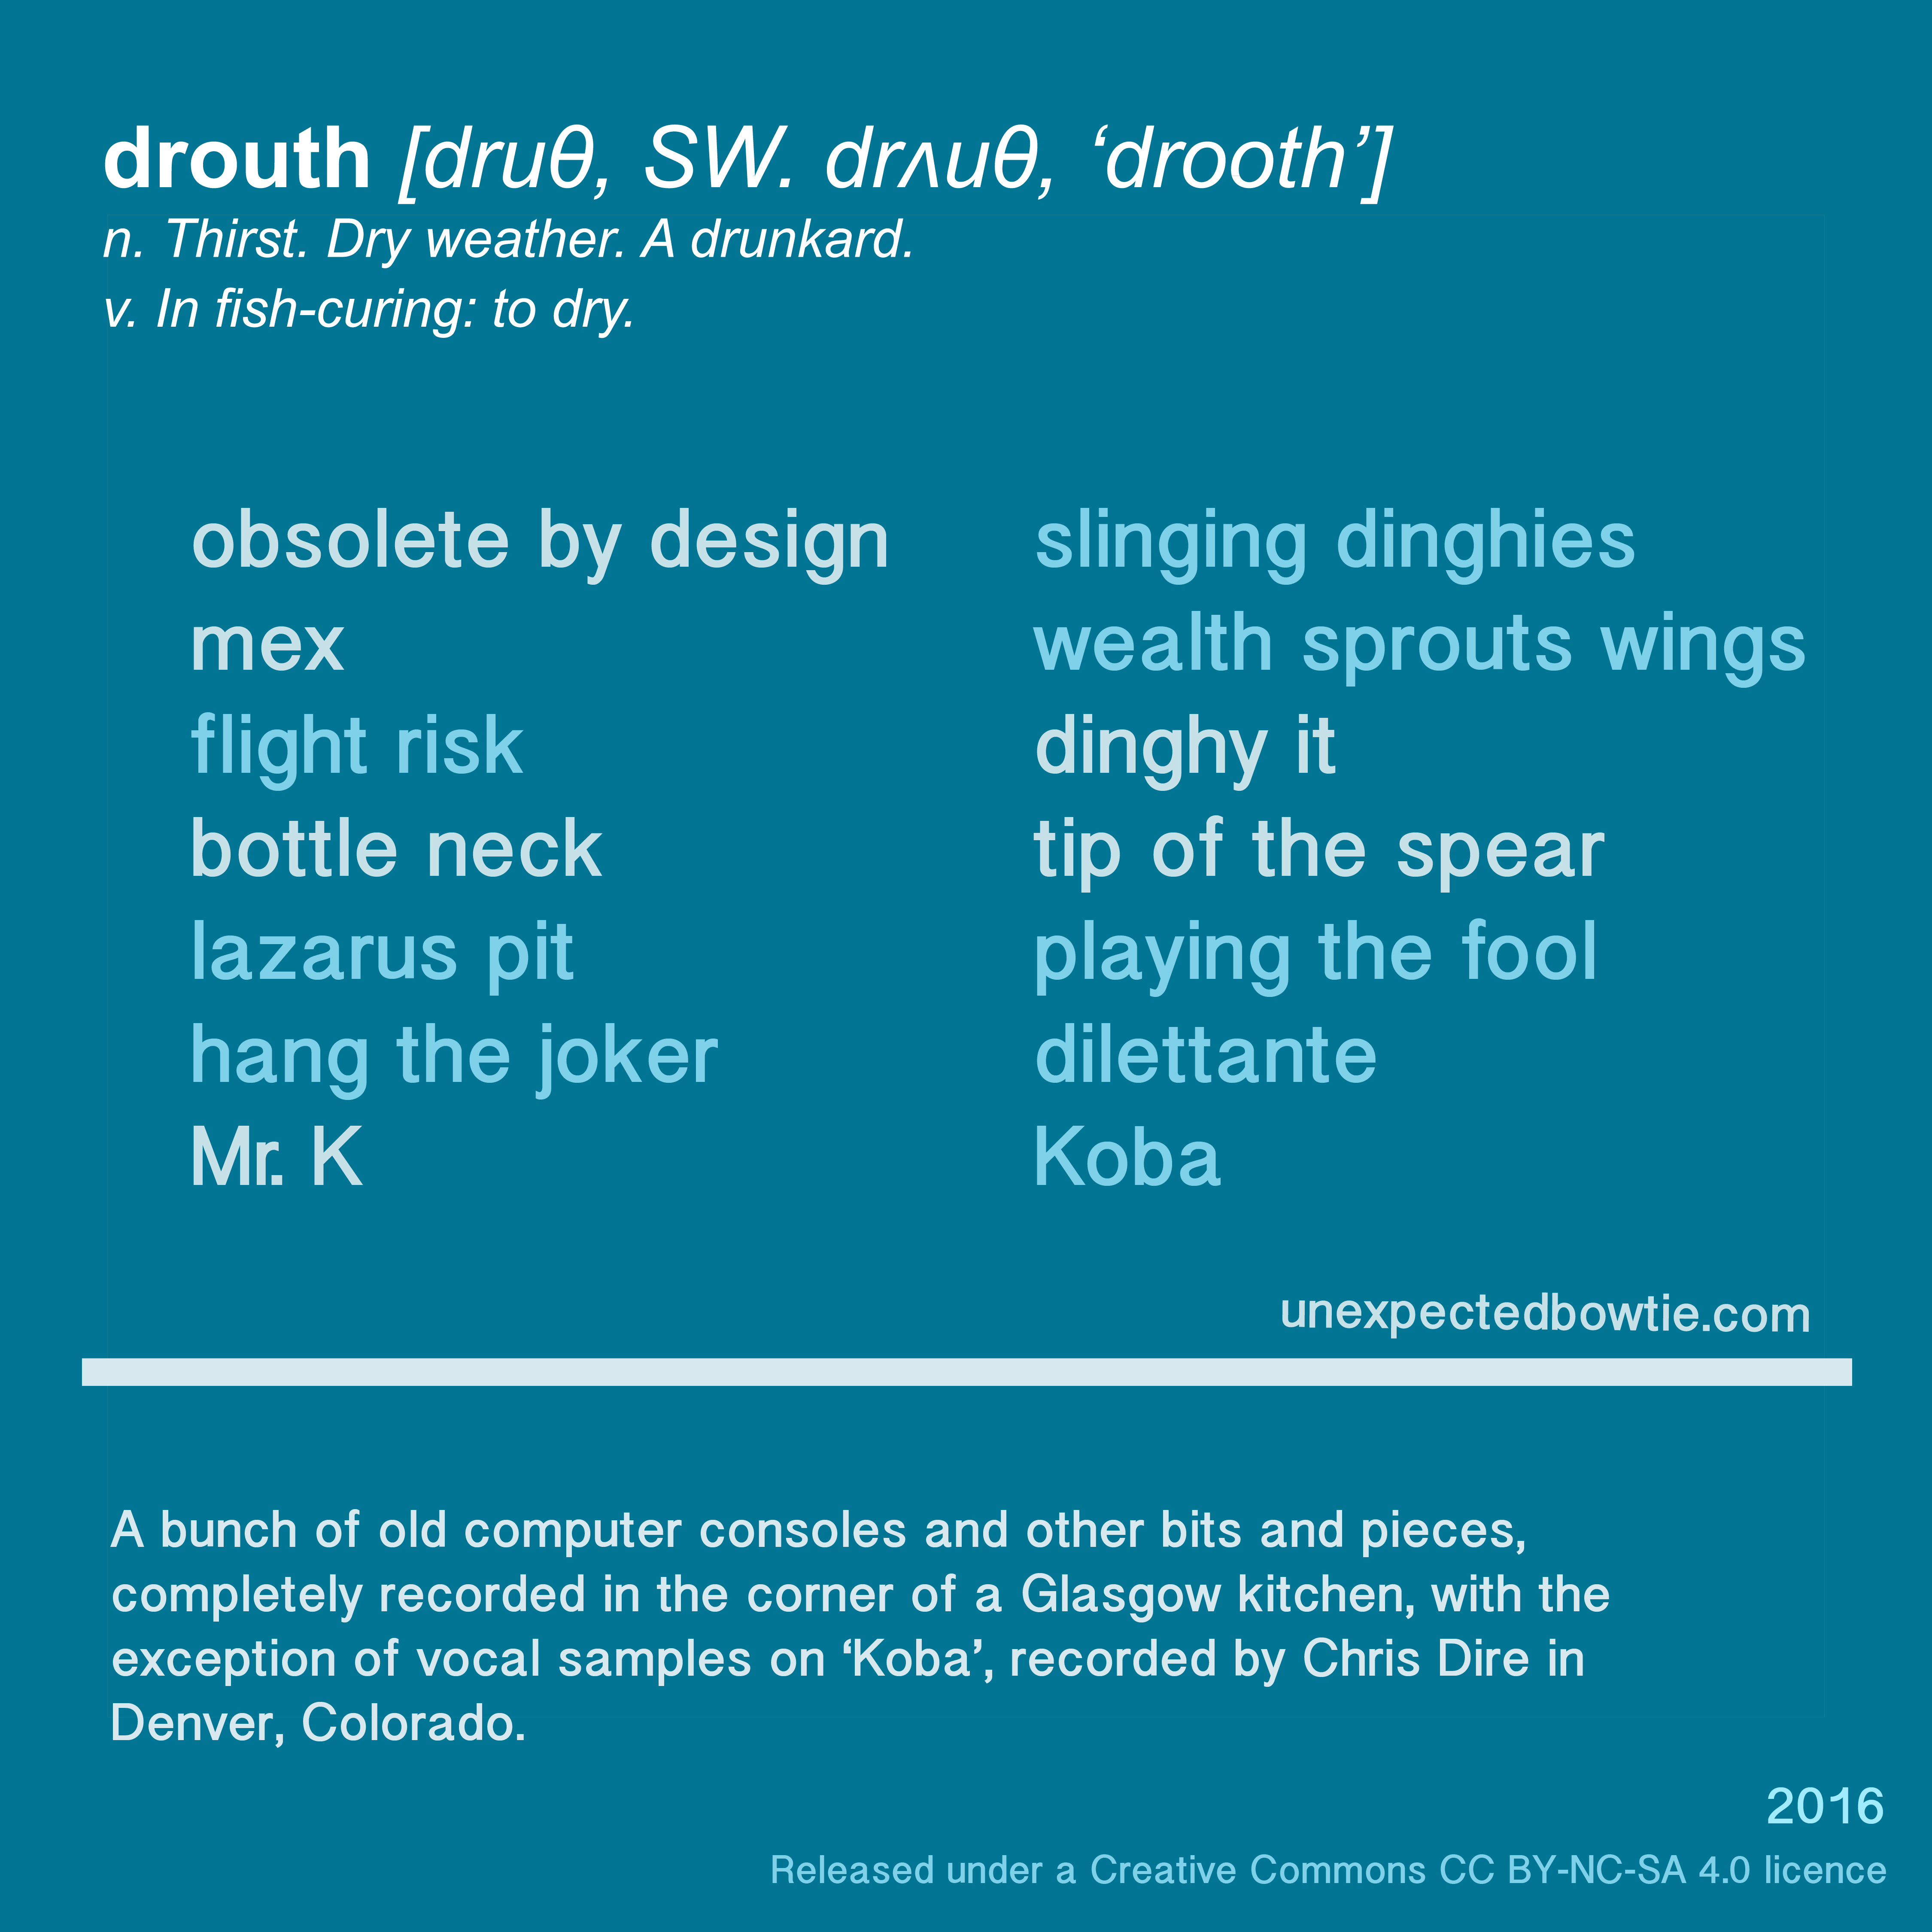 drouth album back cover.png